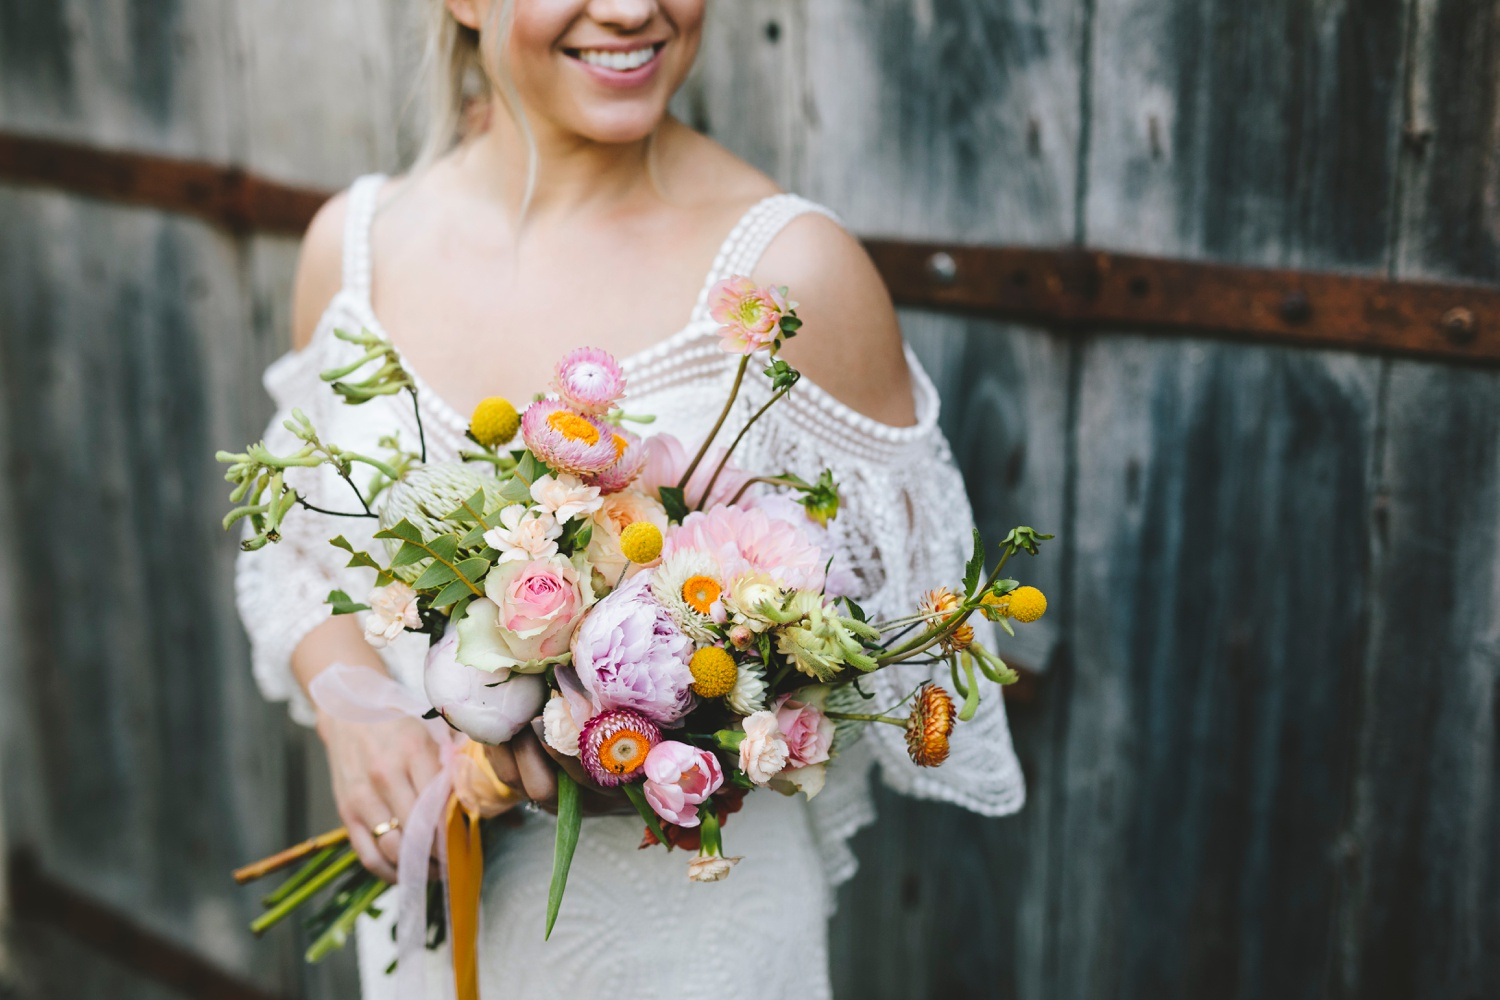 charlie_ray_photography_runaway_romance_elopement_emily_moon_plett_simple_boho_wedding_south_africa_bohemium_0083.jpg